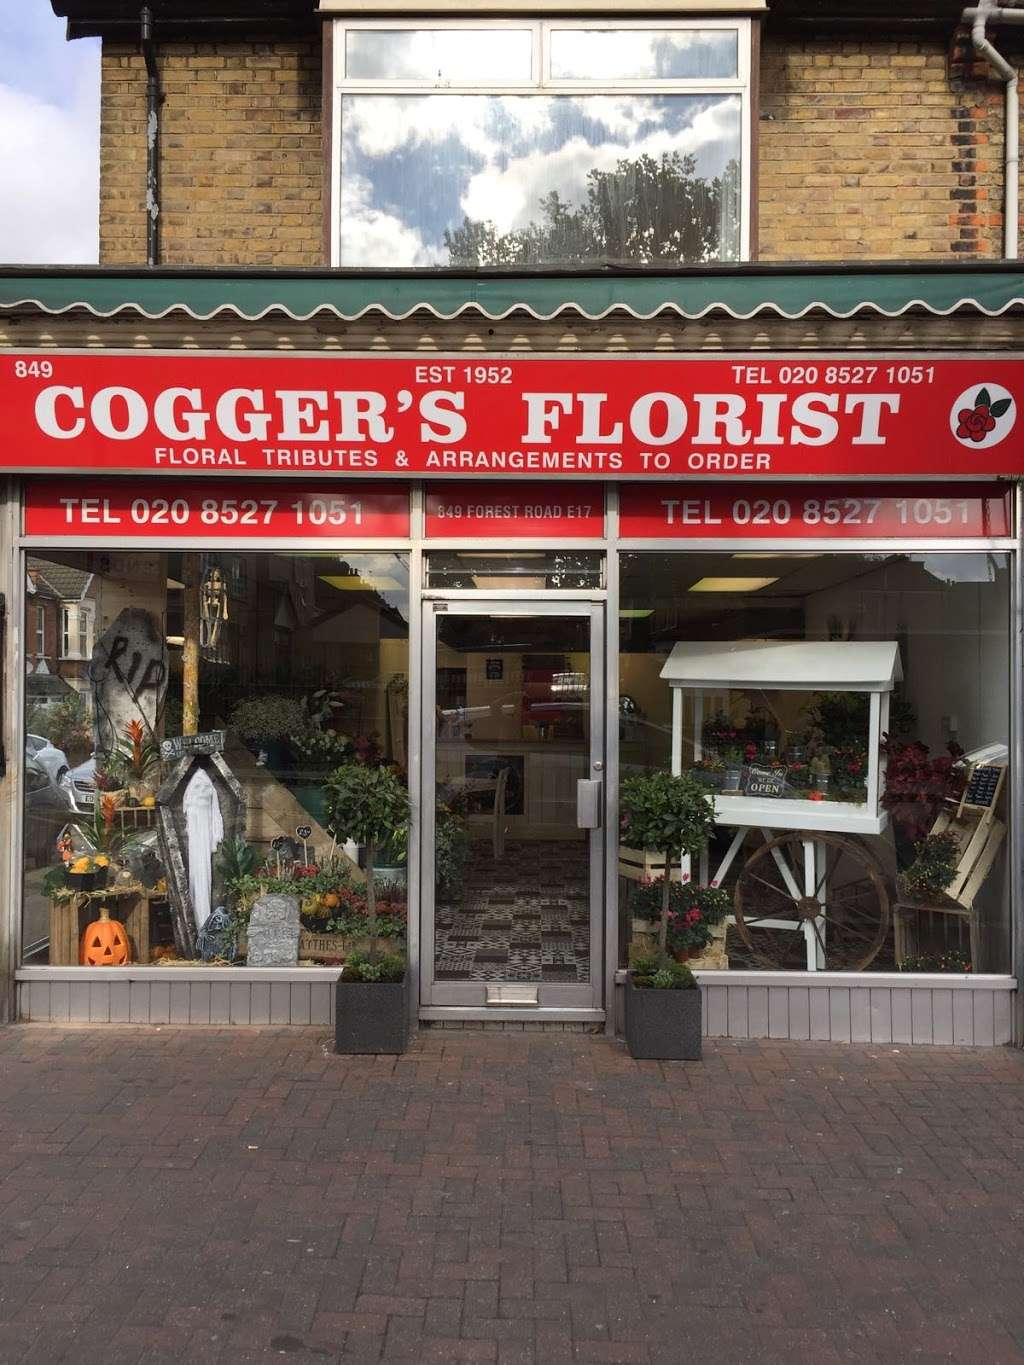 Coggers in Bloom - florist  | Photo 6 of 10 | Address: 849 Forest Rd, Walthamstow, London E17 4AT, UK | Phone: 020 8527 1051